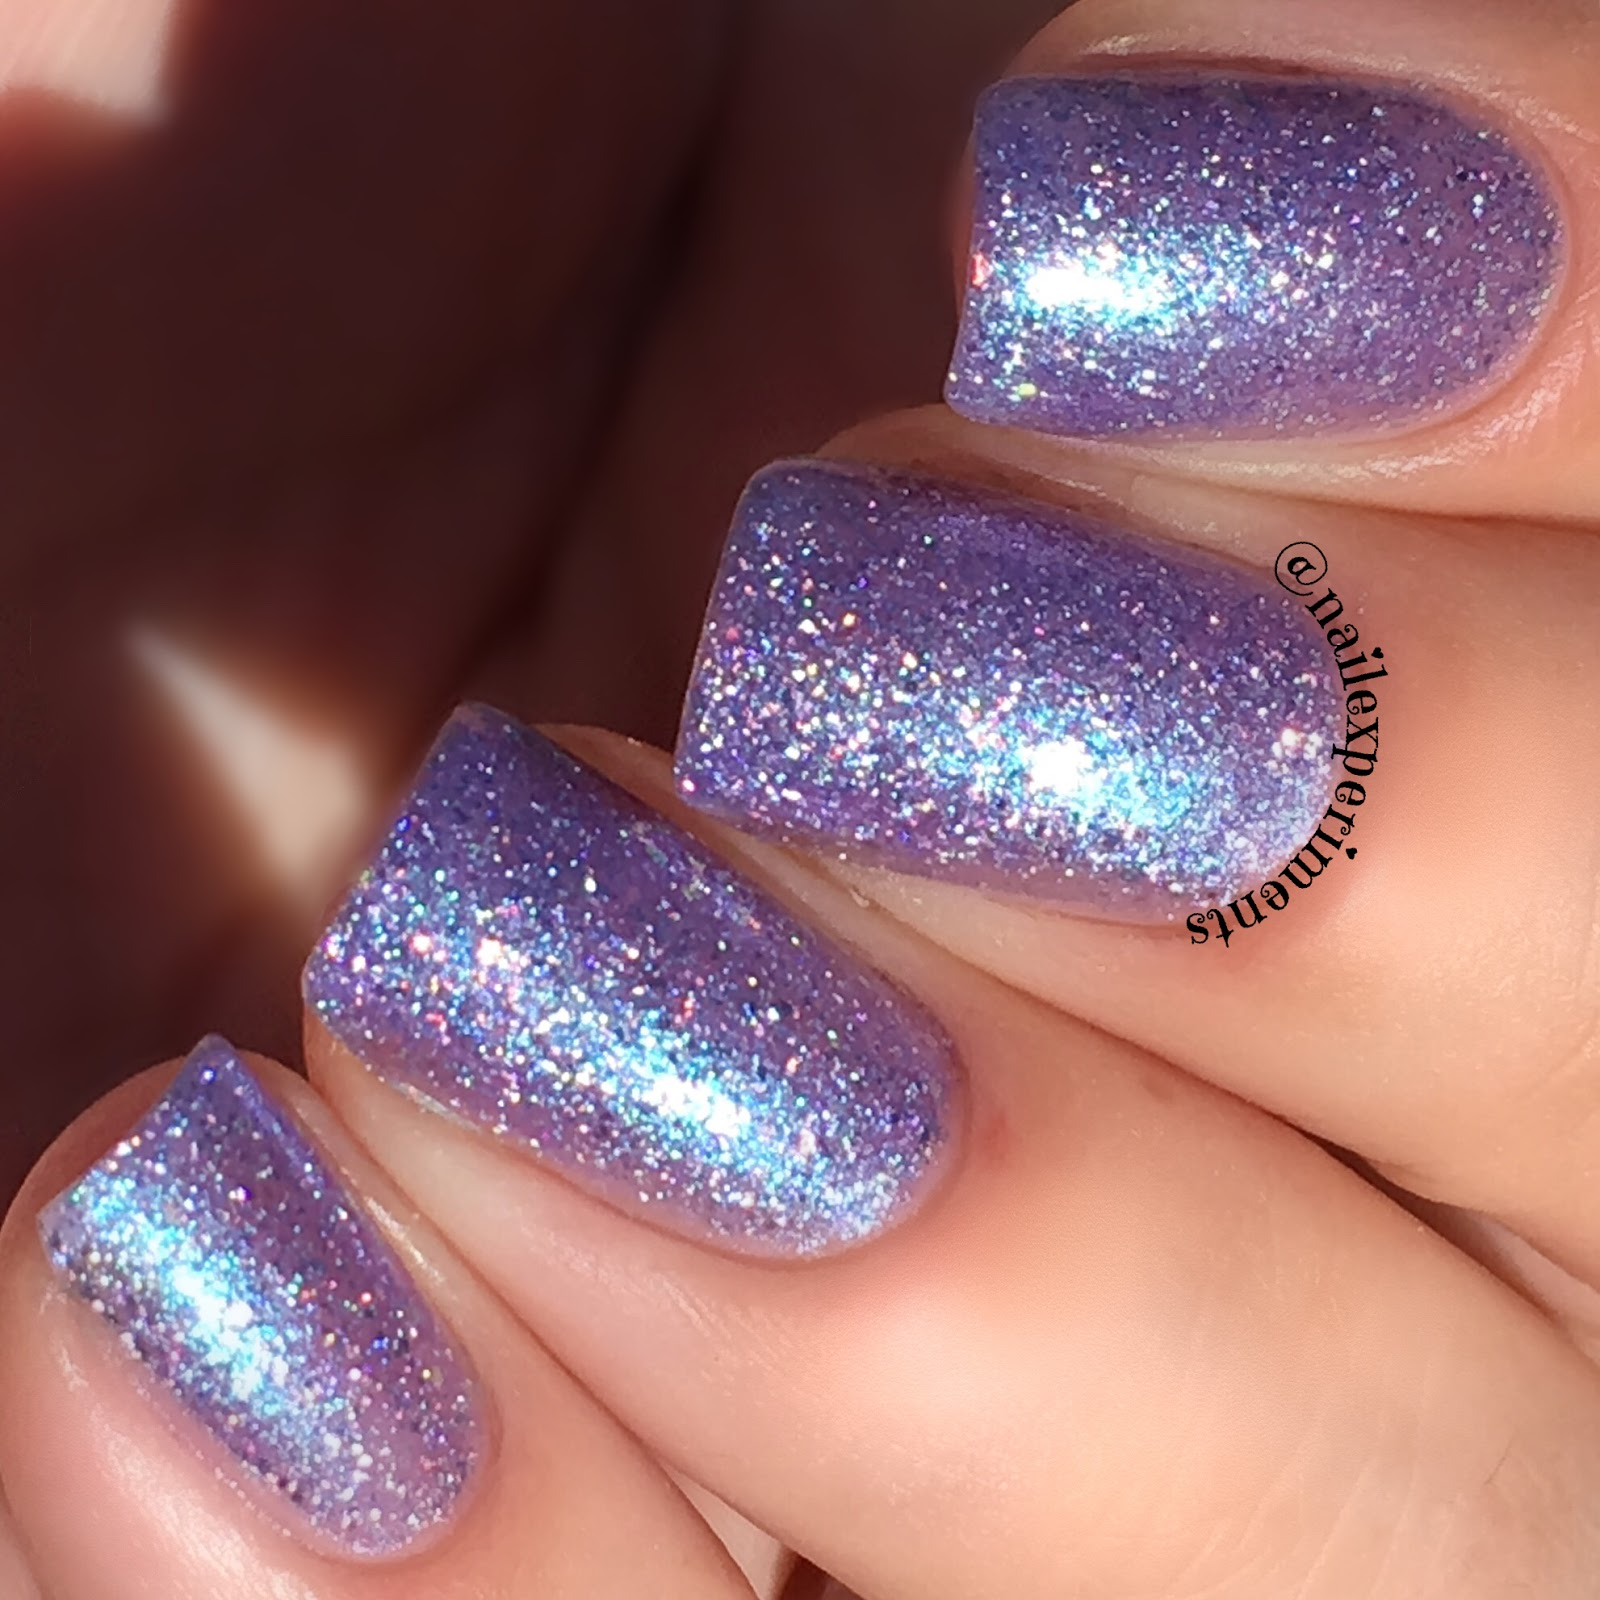 colors by llarowe late summer 2017 collection polish mermaids in maui